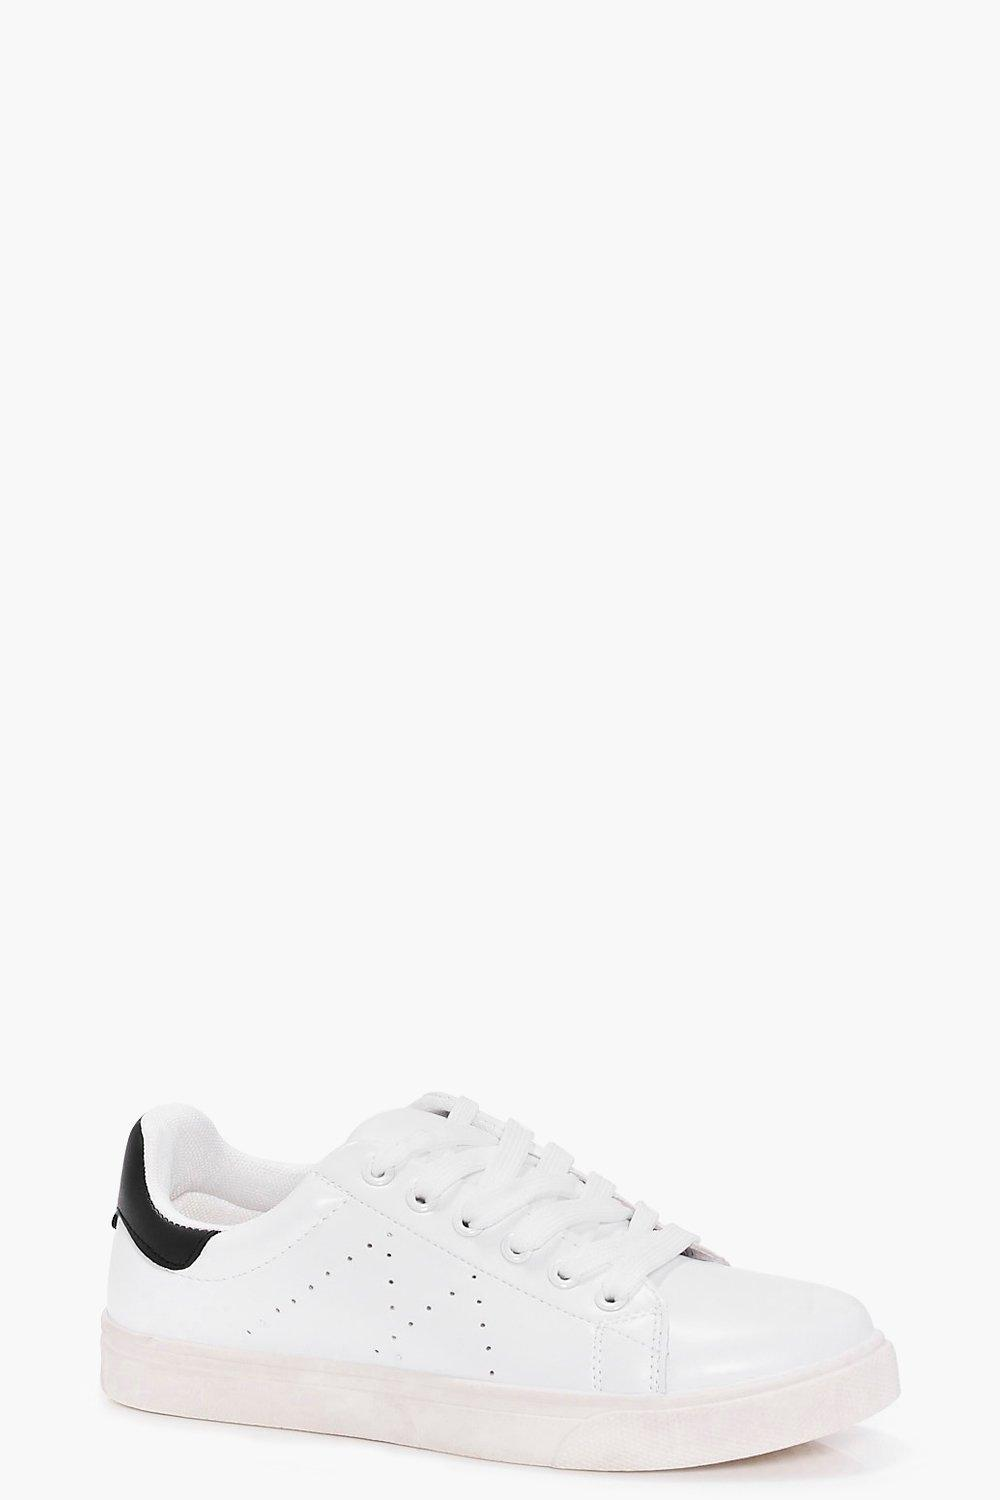 Tilly Colour Back Lace Up Trainer